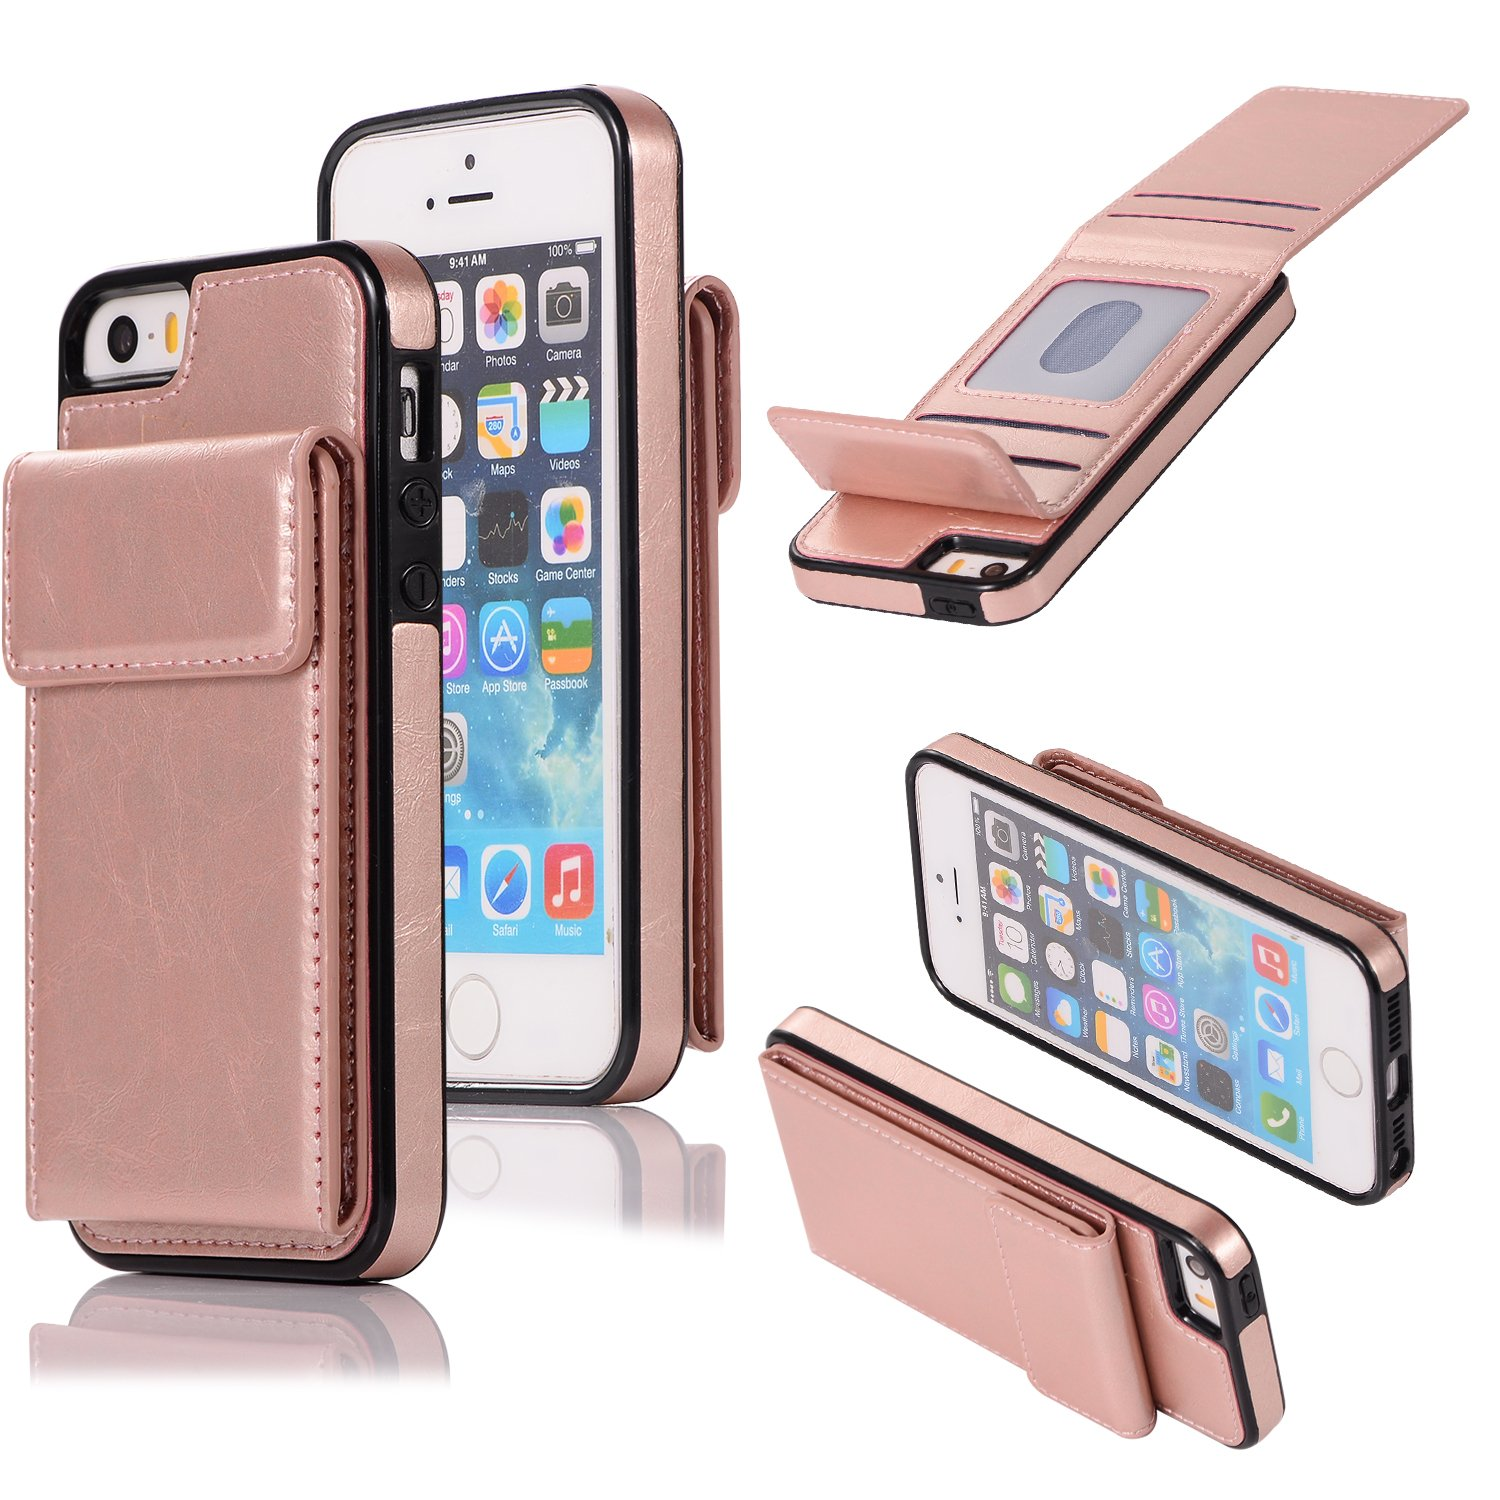 DAMONDY Wallet Case for iPhone 5S,iPhone 5,iPhone SE,Luxury Wallet Purse Card Holders Design Cover Soft Shockproof Bumper Folio Flip Leather Kickstand Case for iPhone SE 5S 5-Rose Gold by DAMONDY